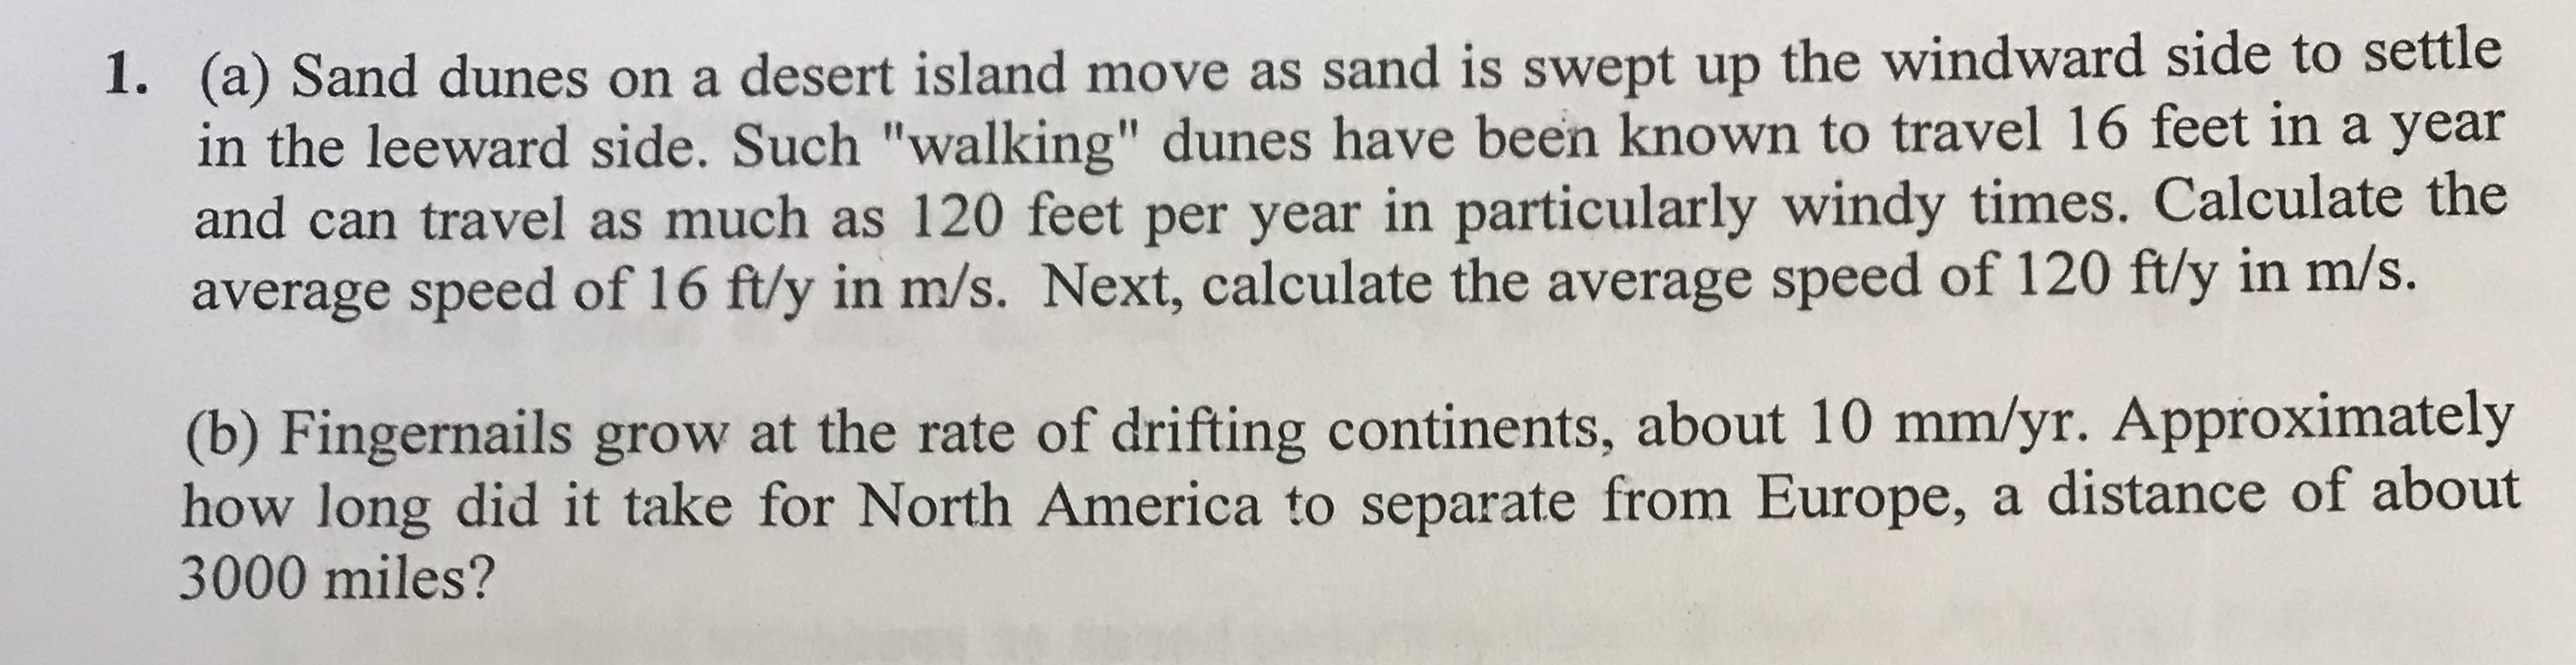 """(a) Sand dunes on a desert island move as sand is swept up the windward side to settle in the leeward side. Such """"walking"""" dunes have been known to travel 16 feet in a year and can travel as much as 120 feet per year in particularly windy times. Calculate the average speed of 16 ftly in m/s. Next, calculate the average speed of 120 ftly in m/s. 1. (b) Fingernails grow at the rate of drifting continents, about 10 mm/yr. Approximately how long did it take for North America to separate from Europe, a distance of about 3000 miles?"""